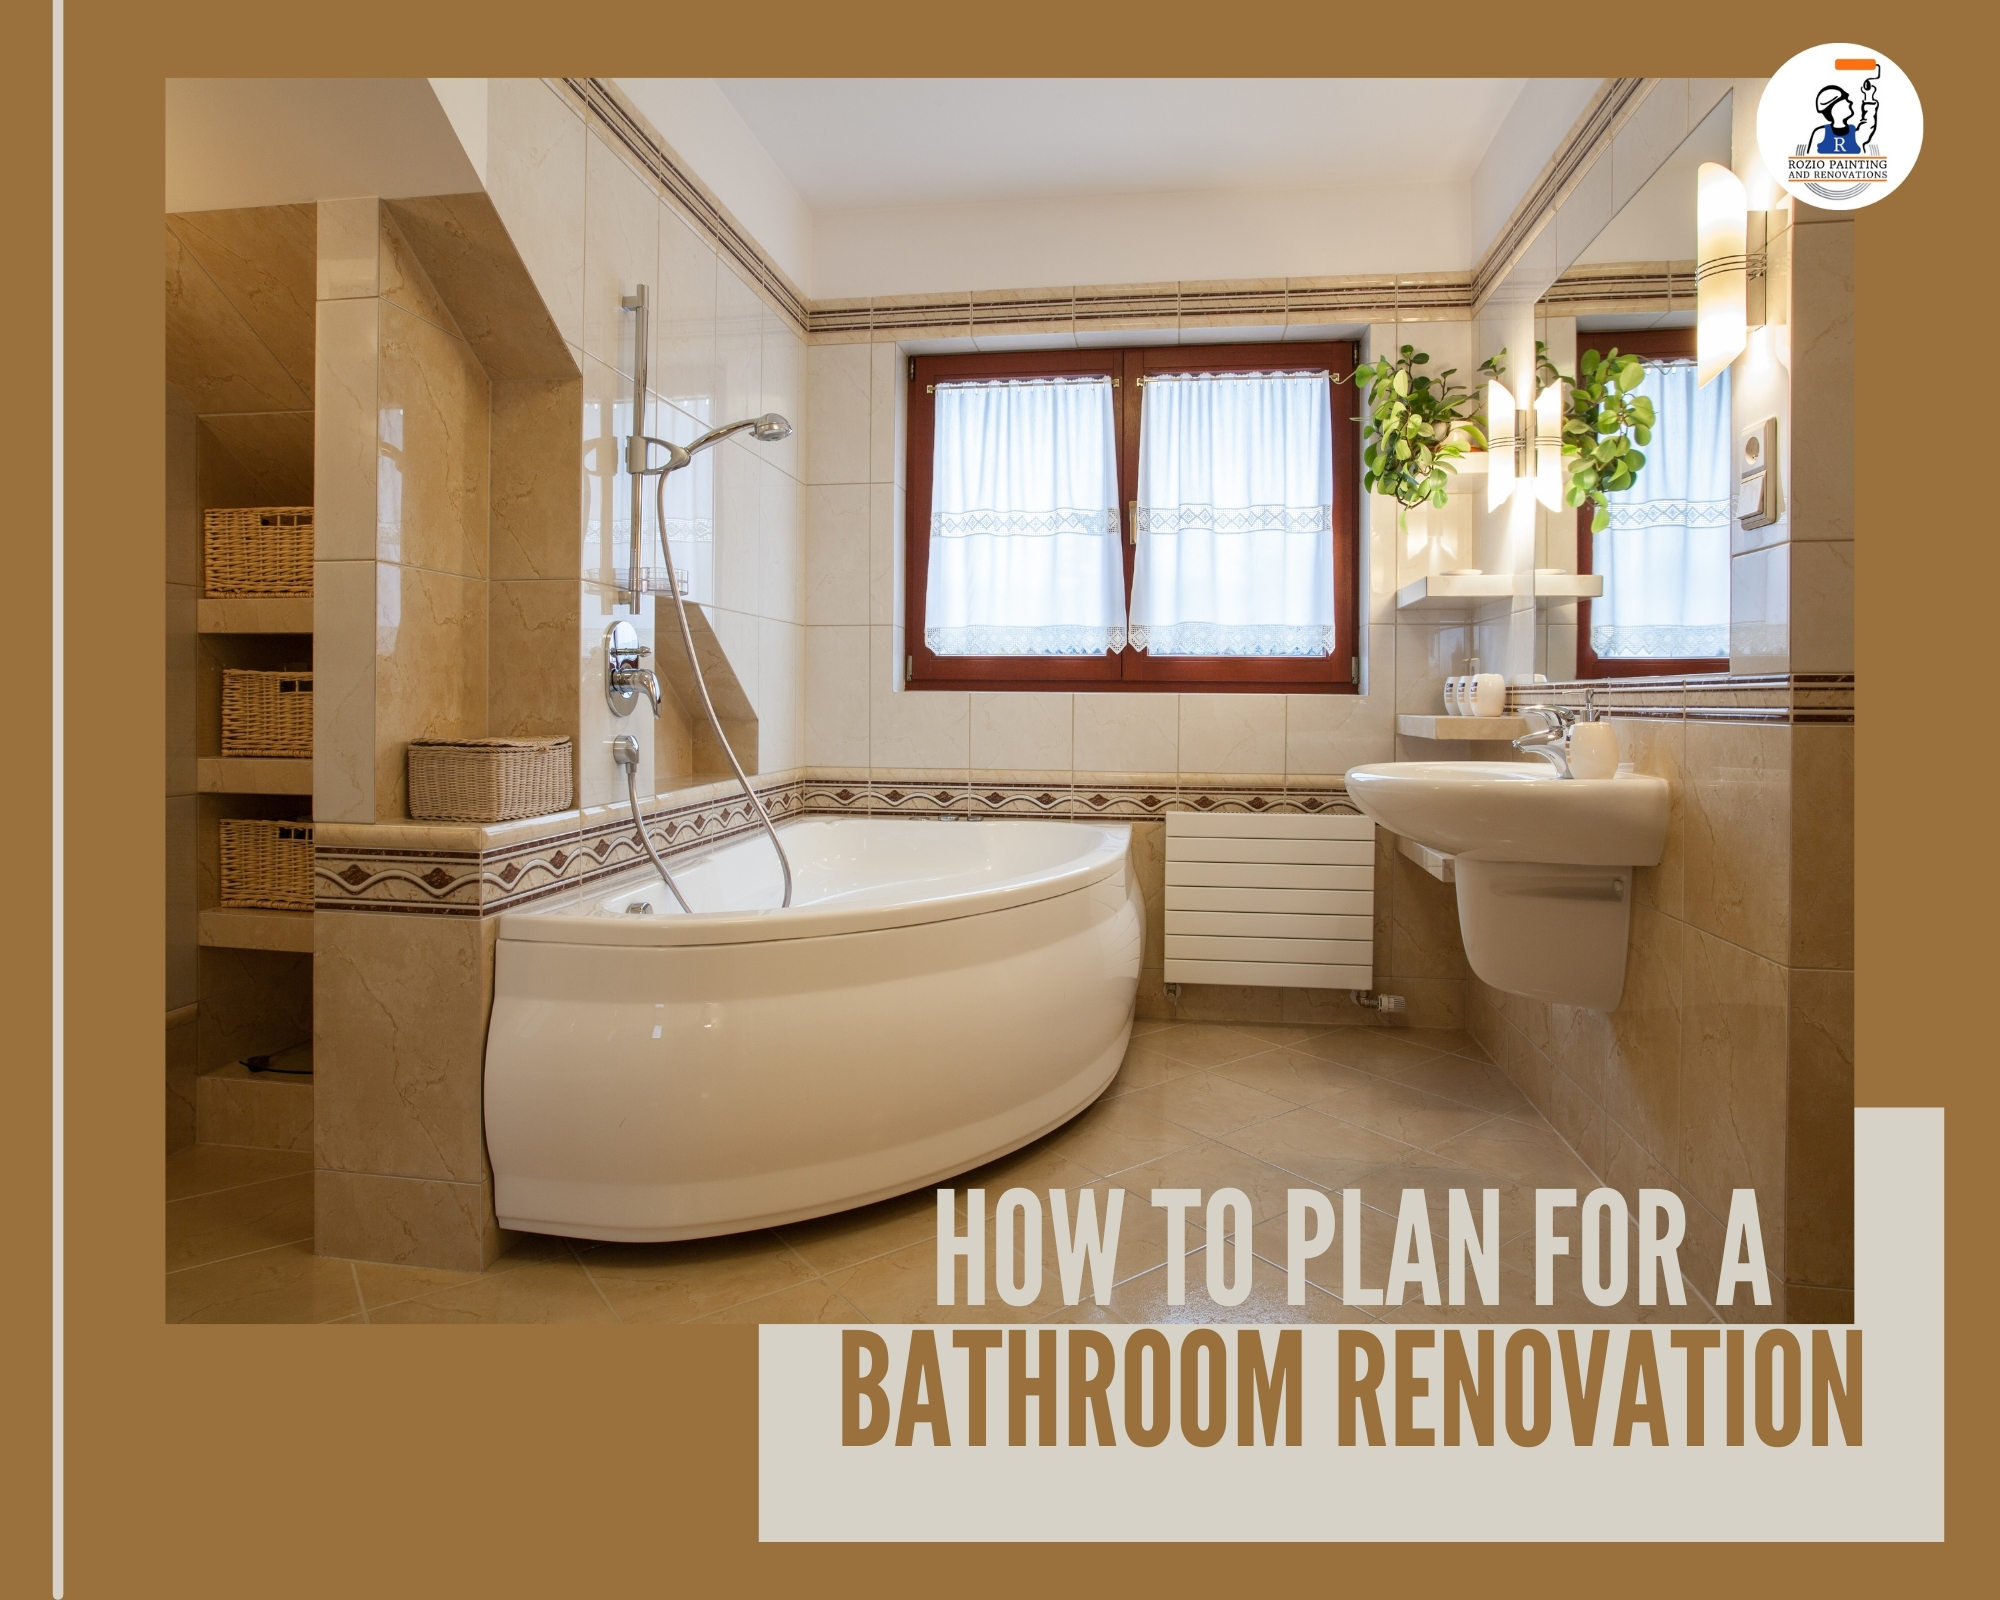 How to Plan for Bathroom Renovation